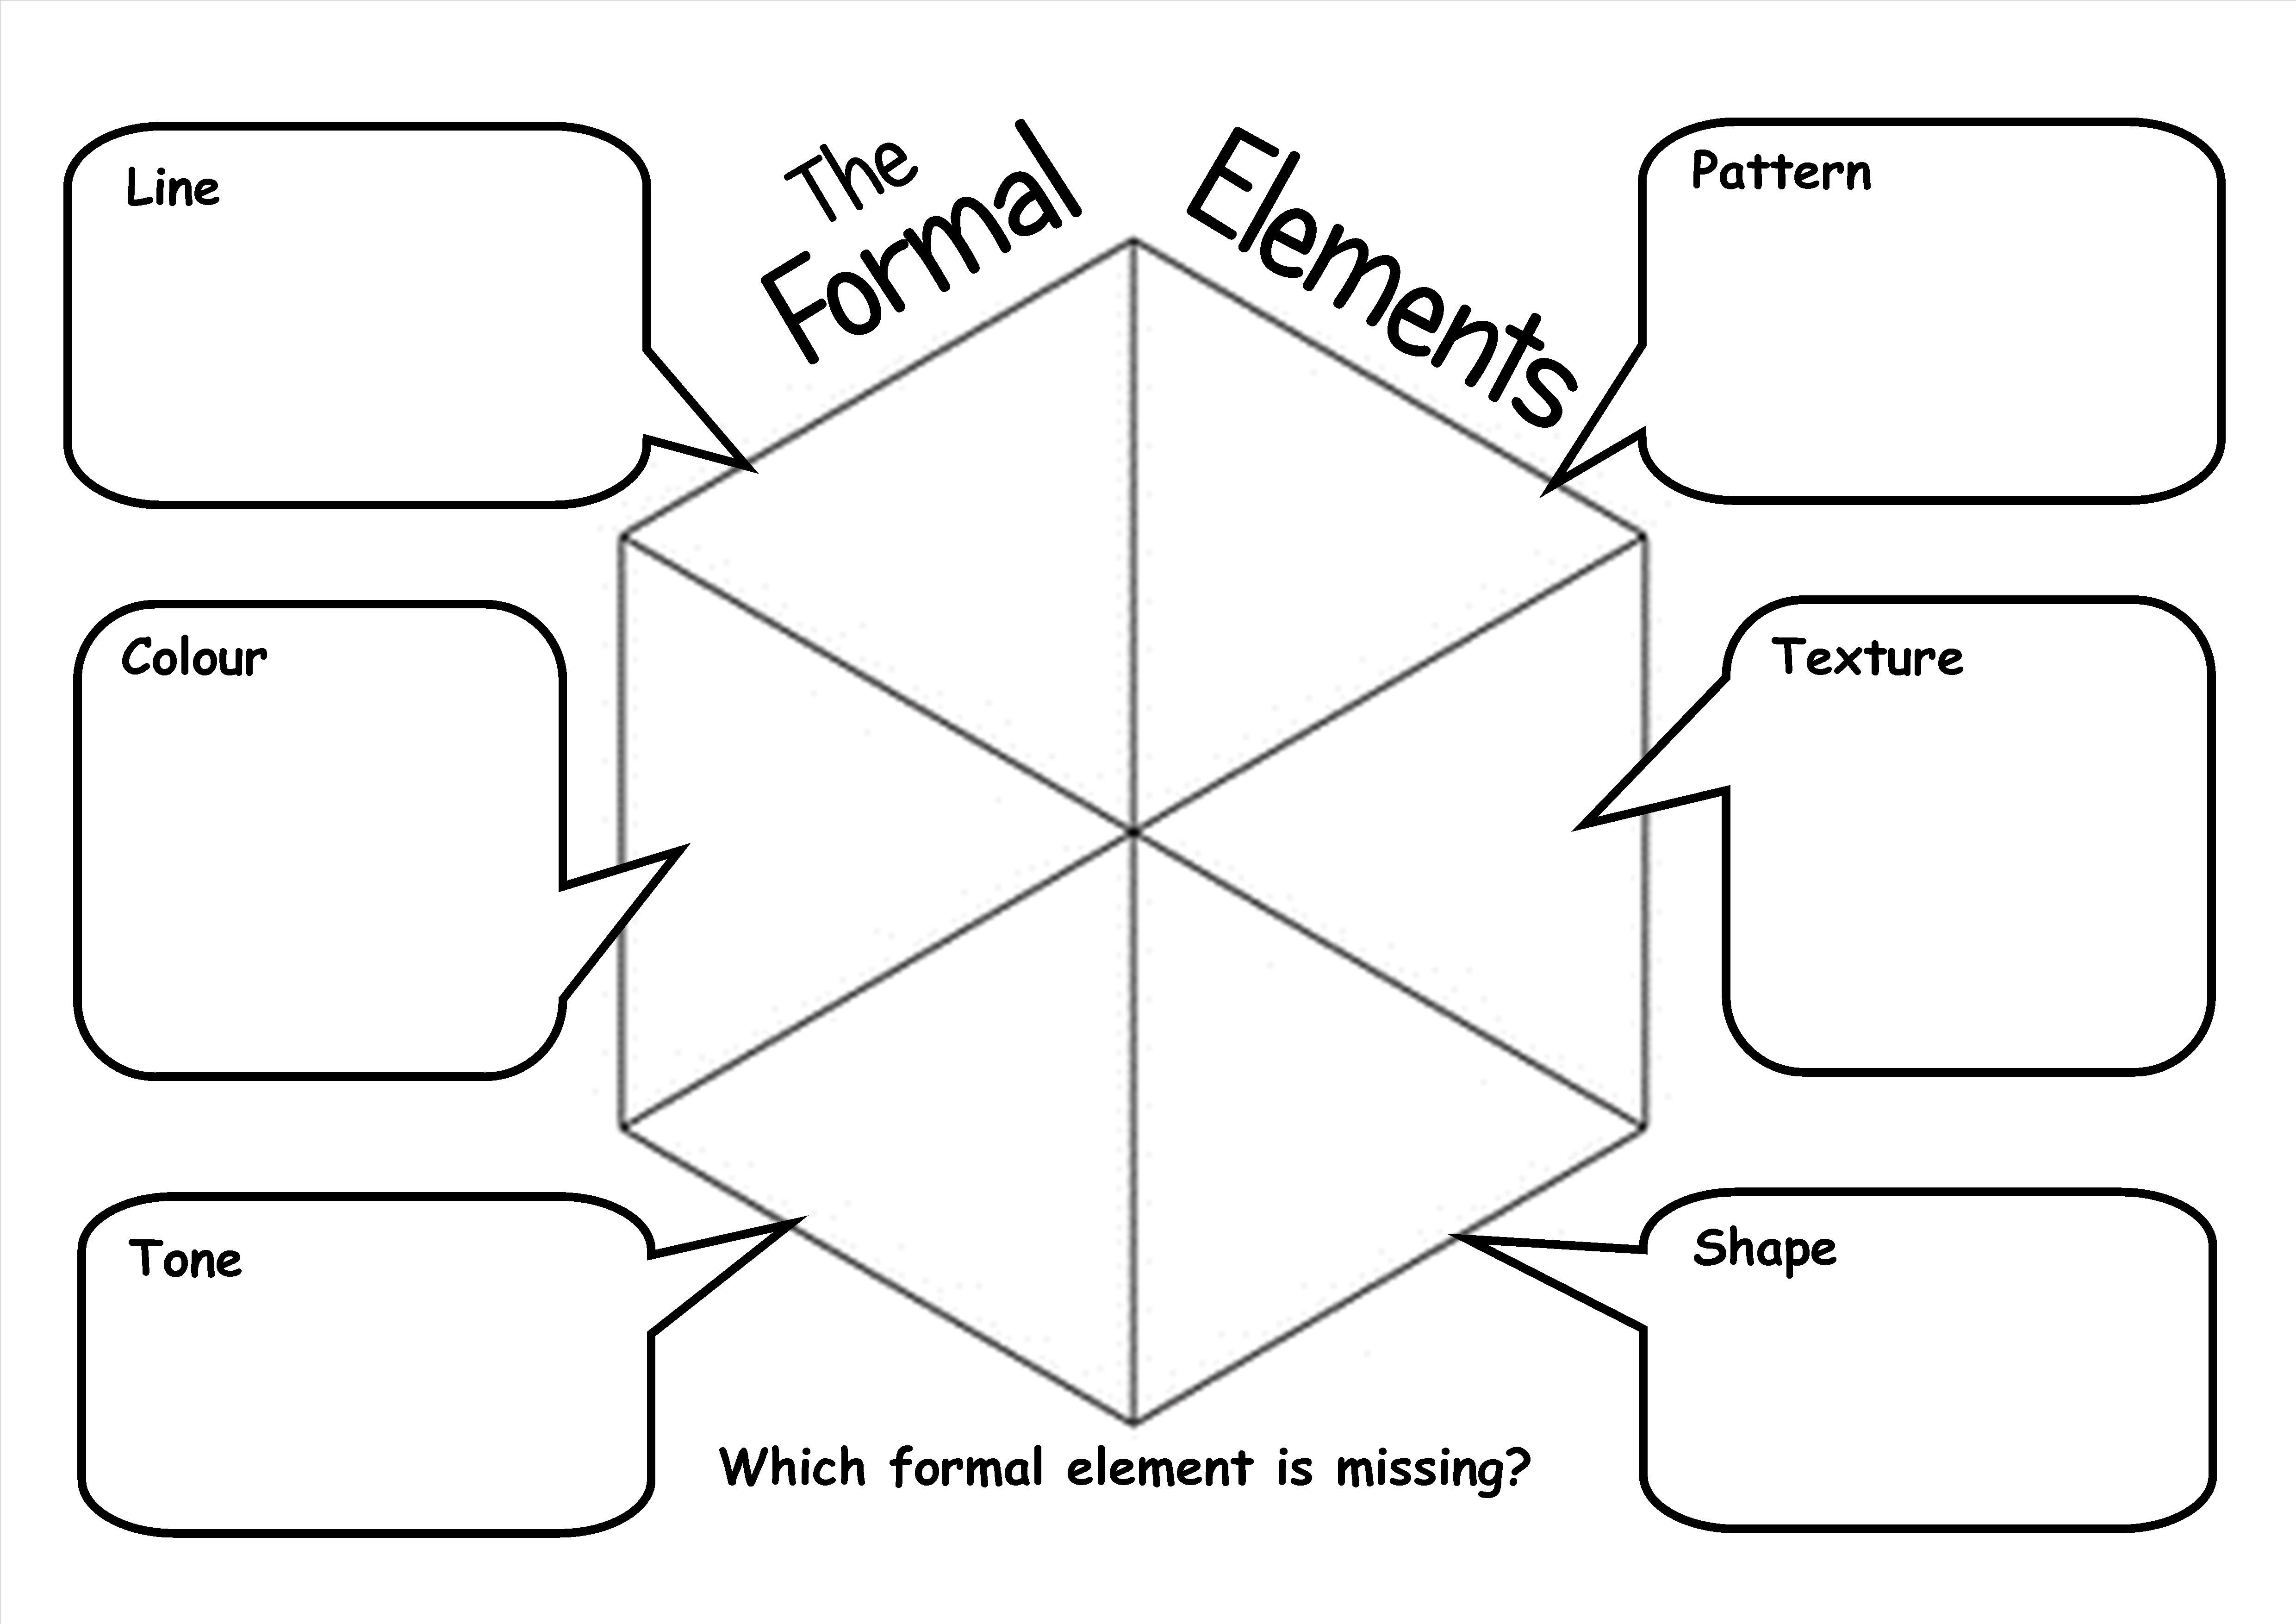 Formal Elements Worksheet Allowing Pupils To Produce A Reference With Definitions Formal Elements Of Art Art Worksheets Art Education Lessons